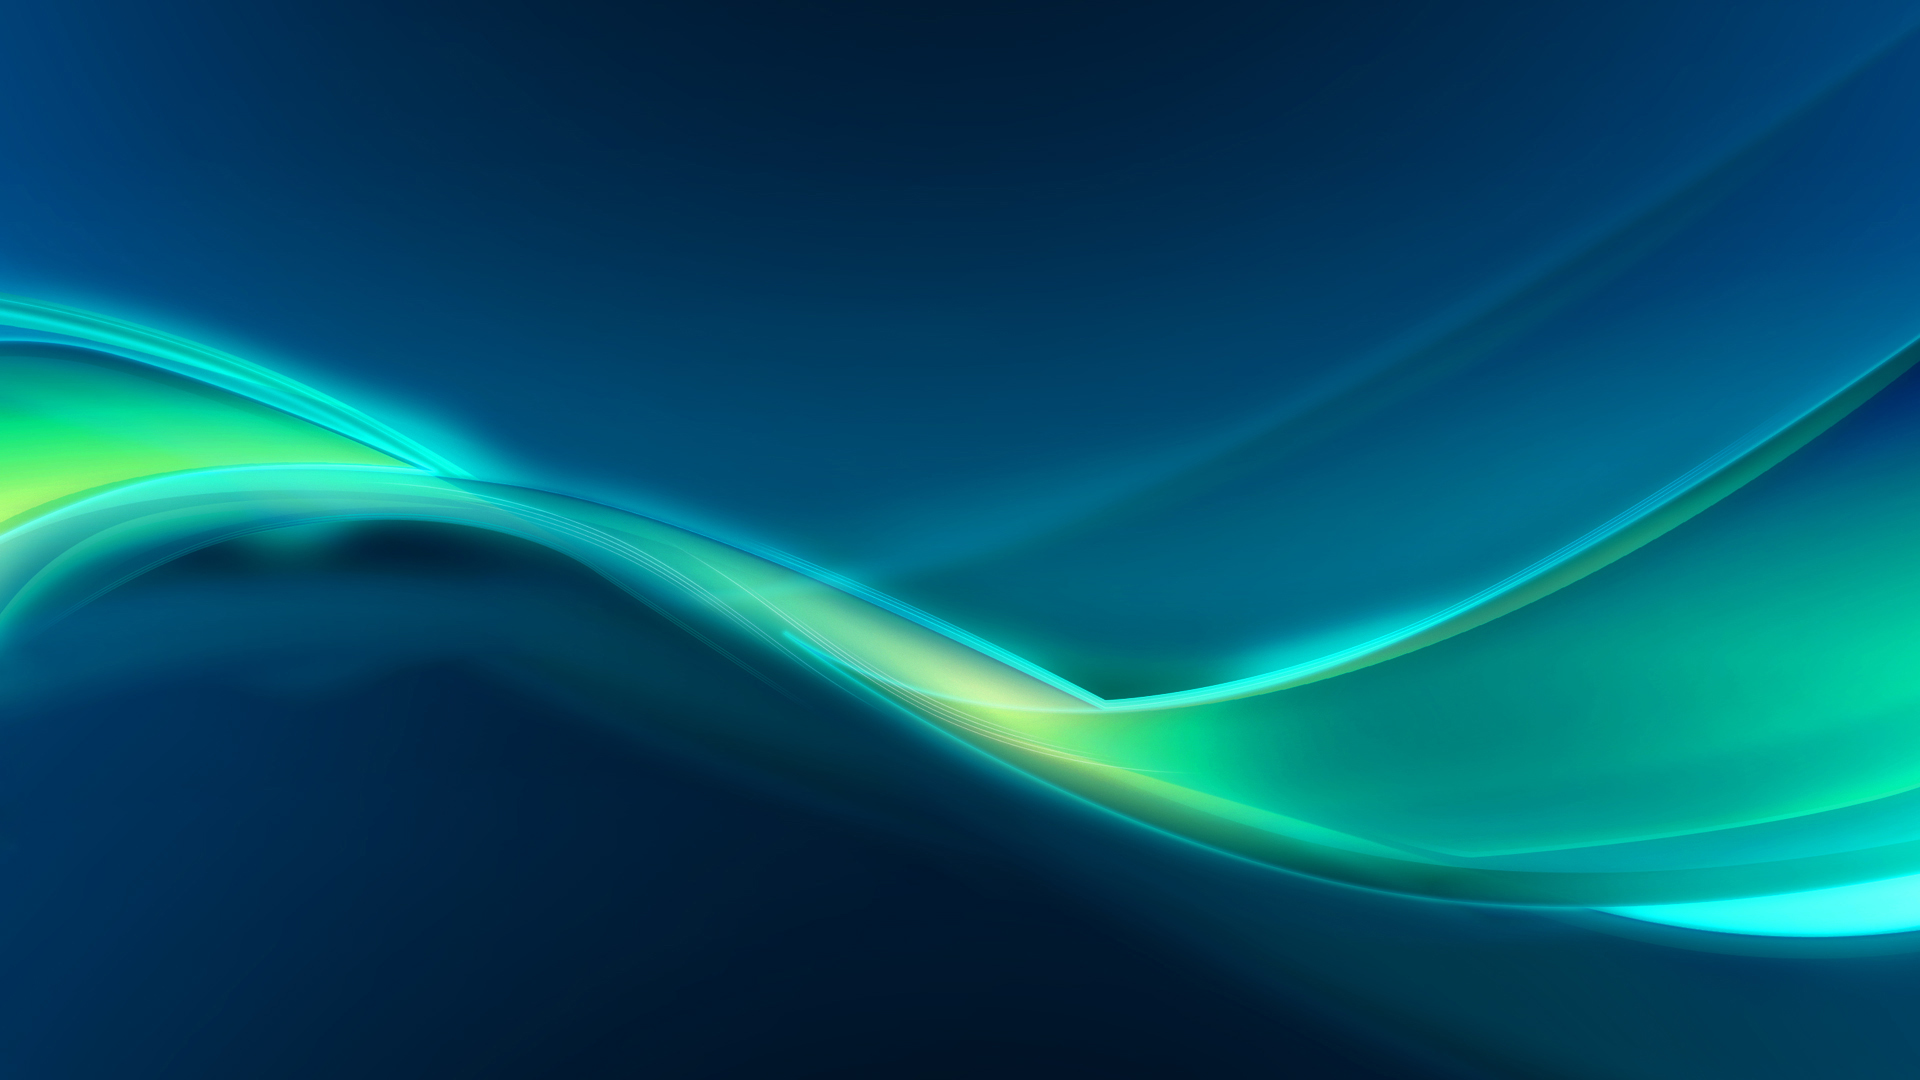 beautiful abstract waves wallpaper 36341 1920x1080 px